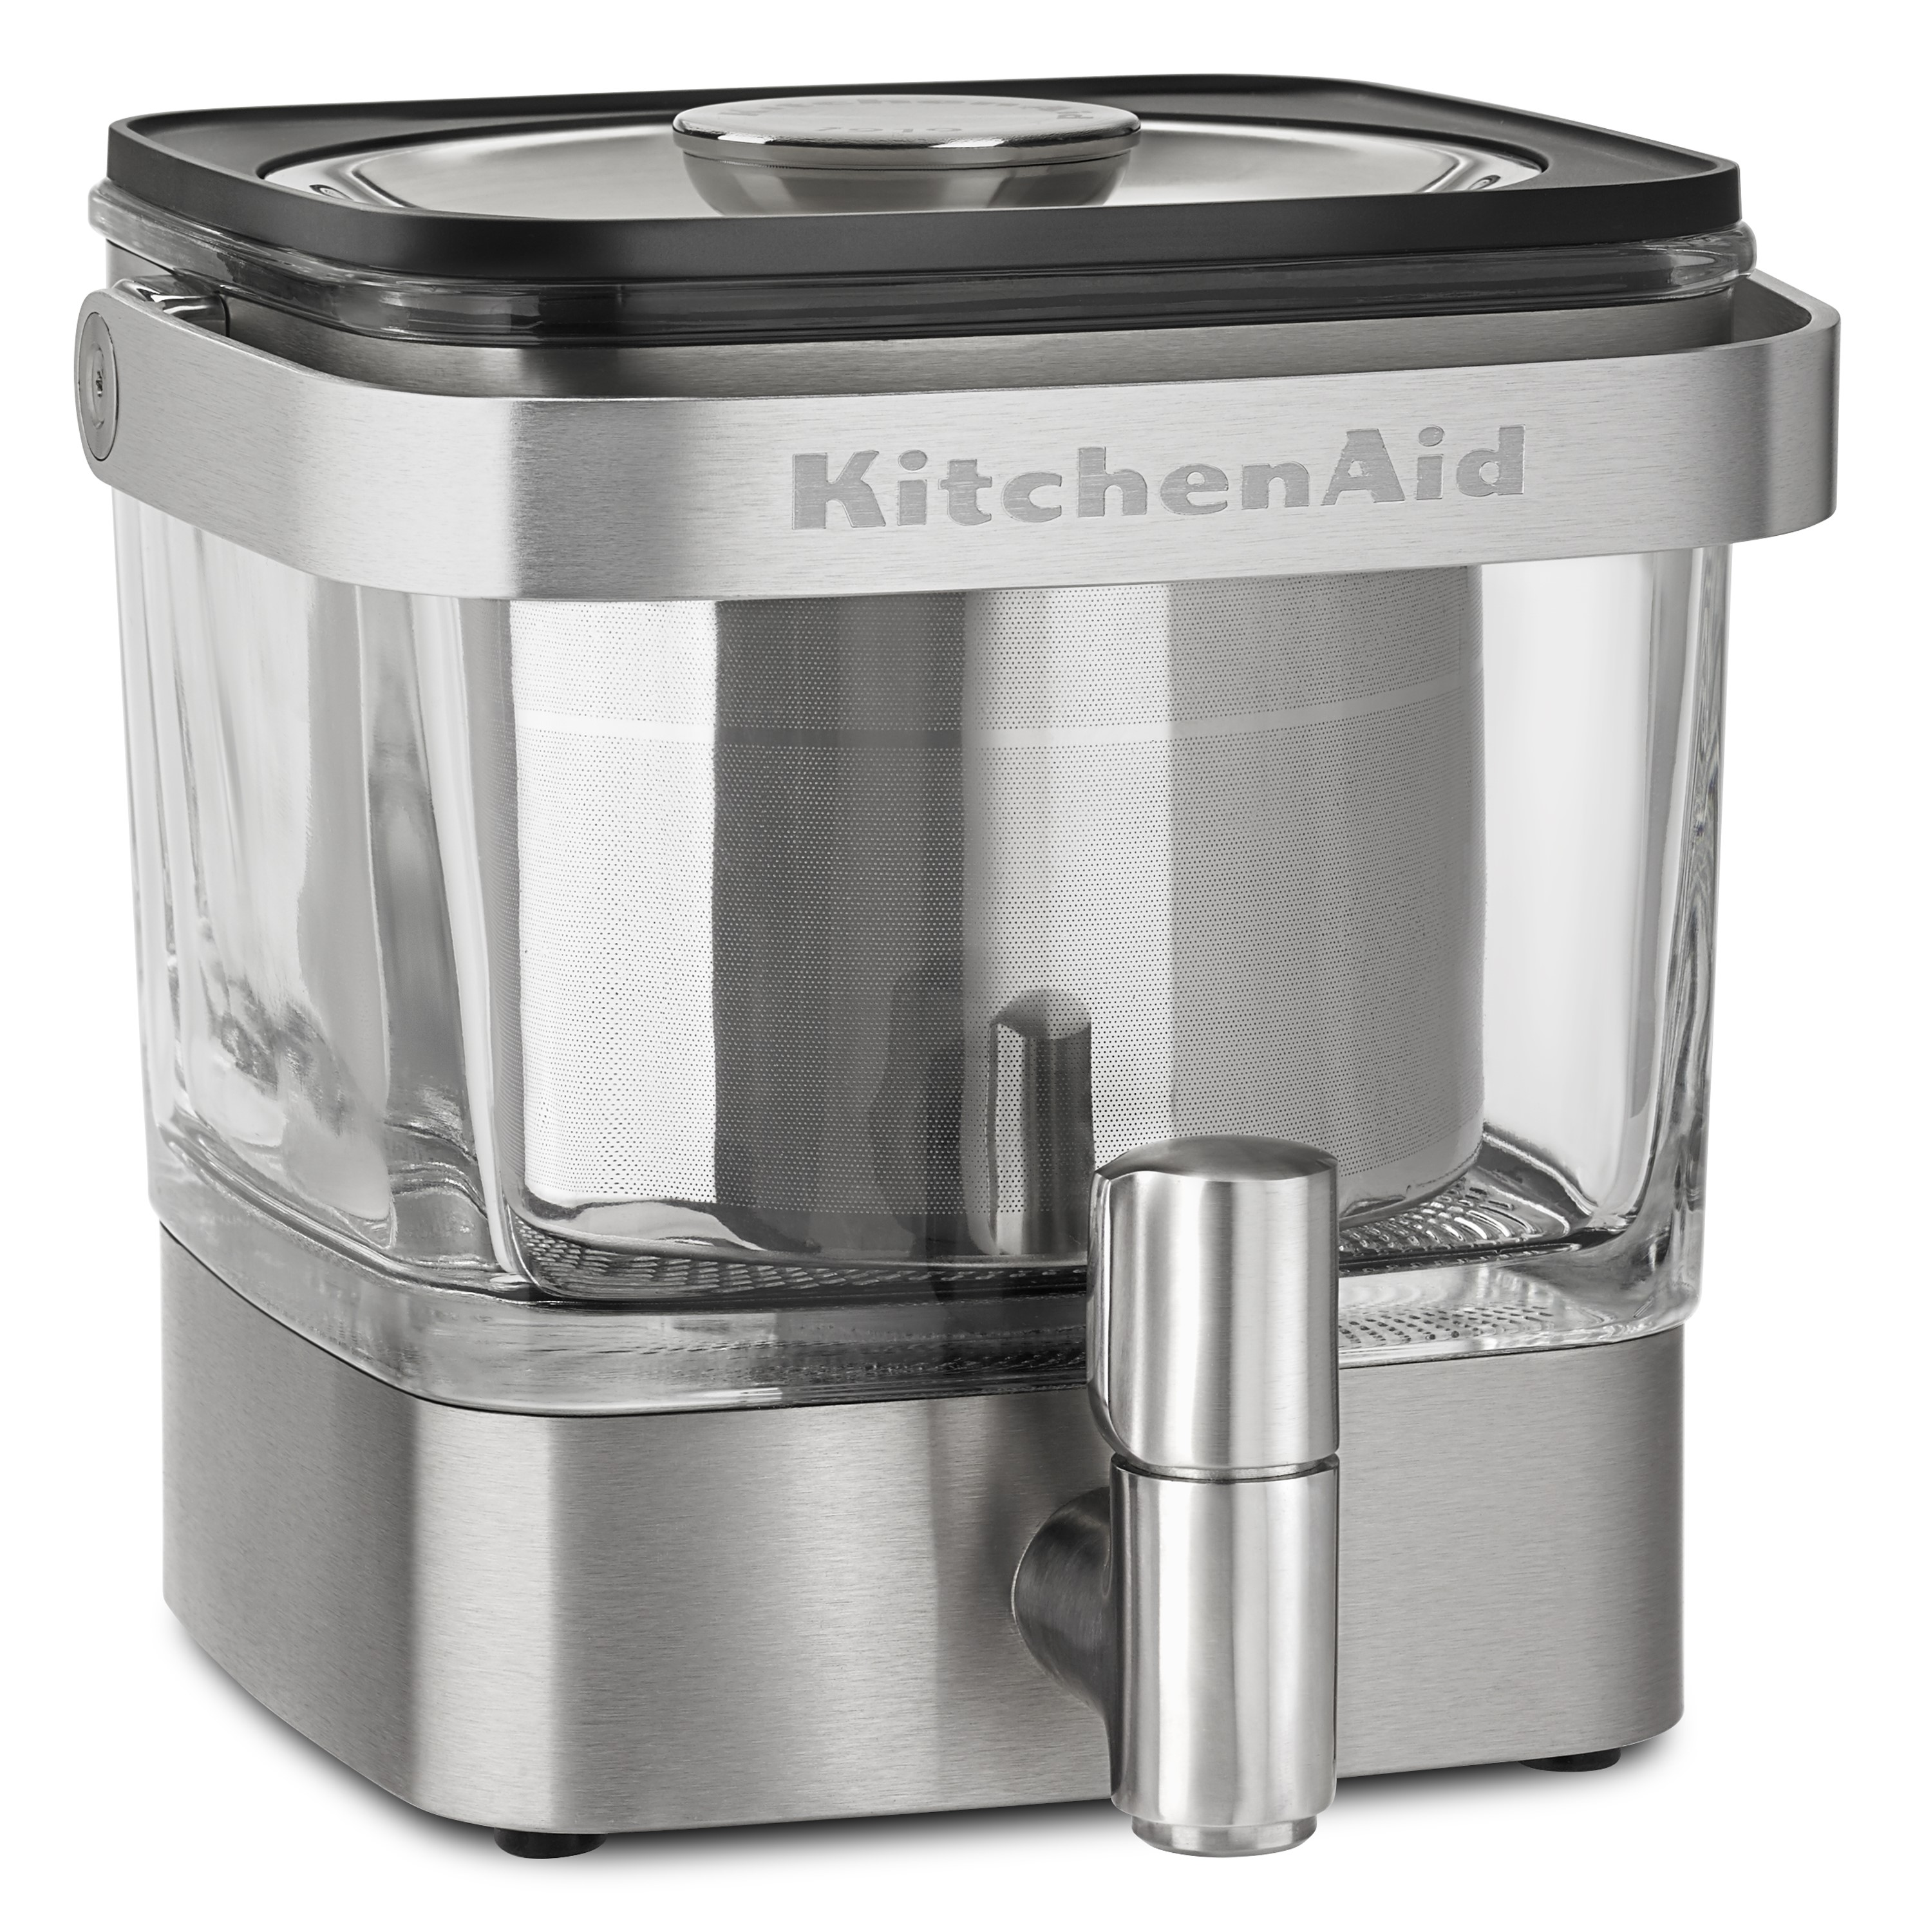 KitchenAid Cold Brew Coffee Maker, Brushed Stainless Steel (KCM4212SX)